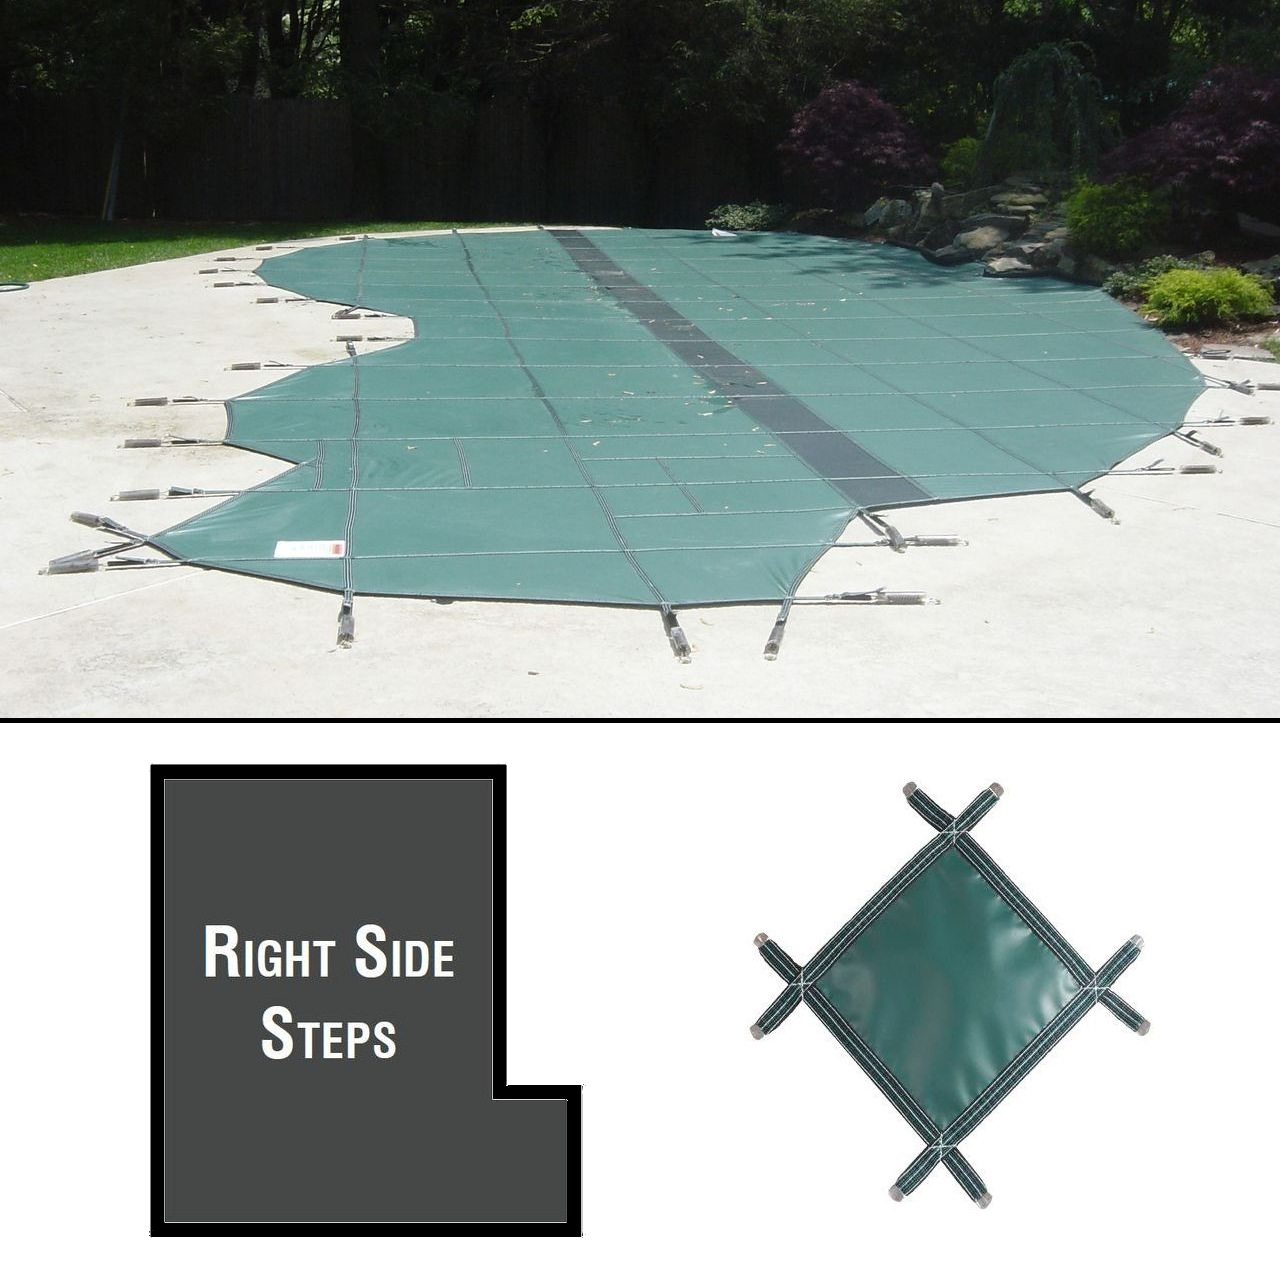 PermaGuard 22'x42' Rectangular Pool Cover With 4'x10' Right Side Steps